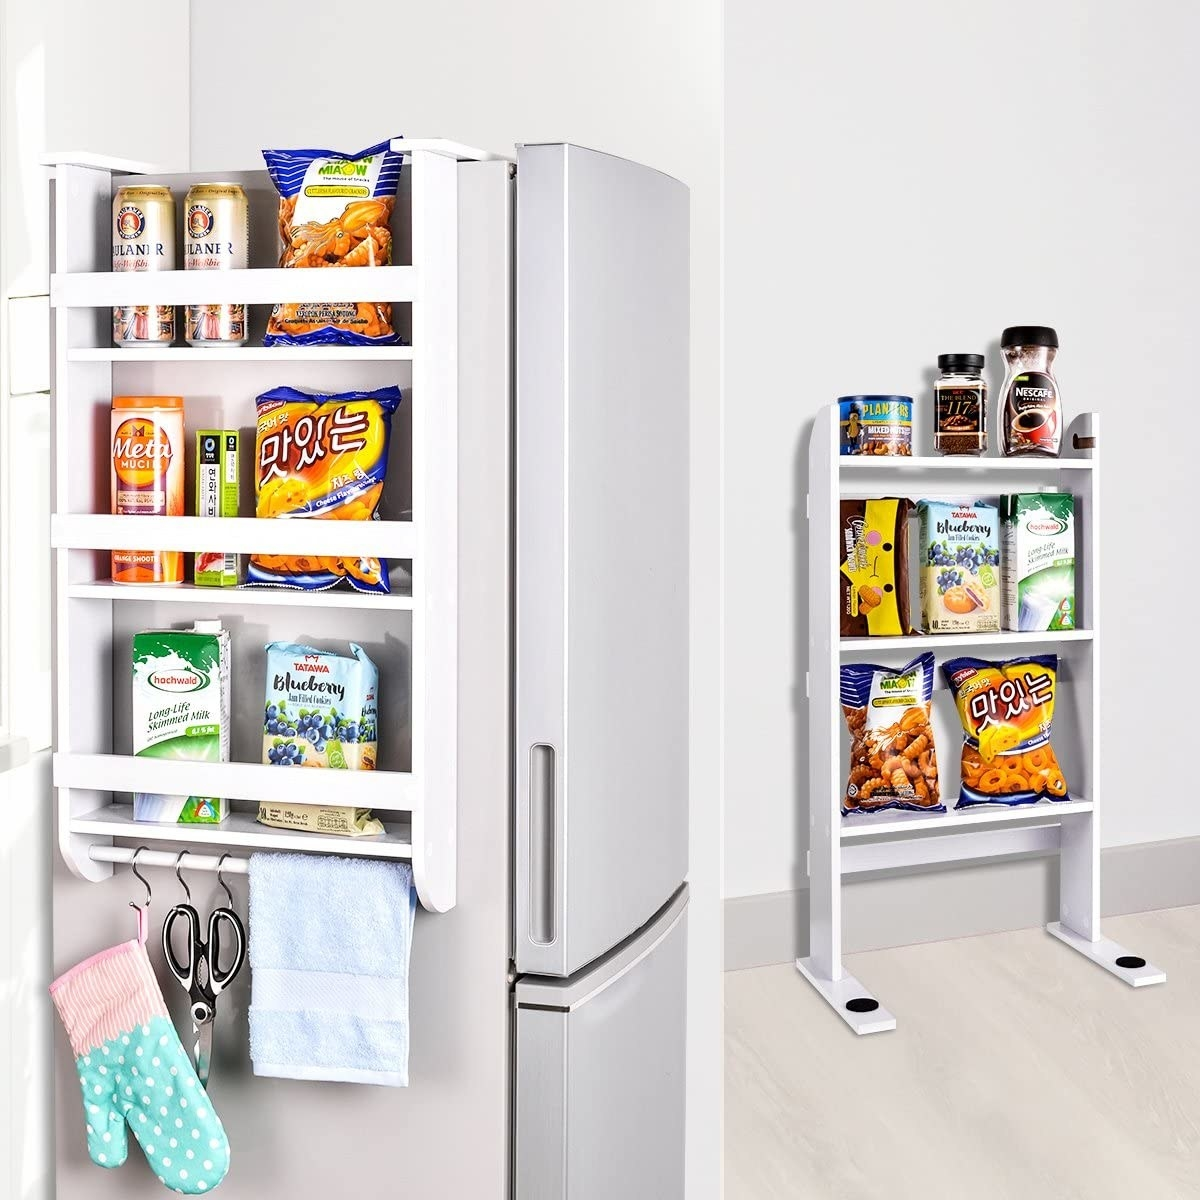 The three-tier unit which can be hung on the side of the fridge or stand on its own